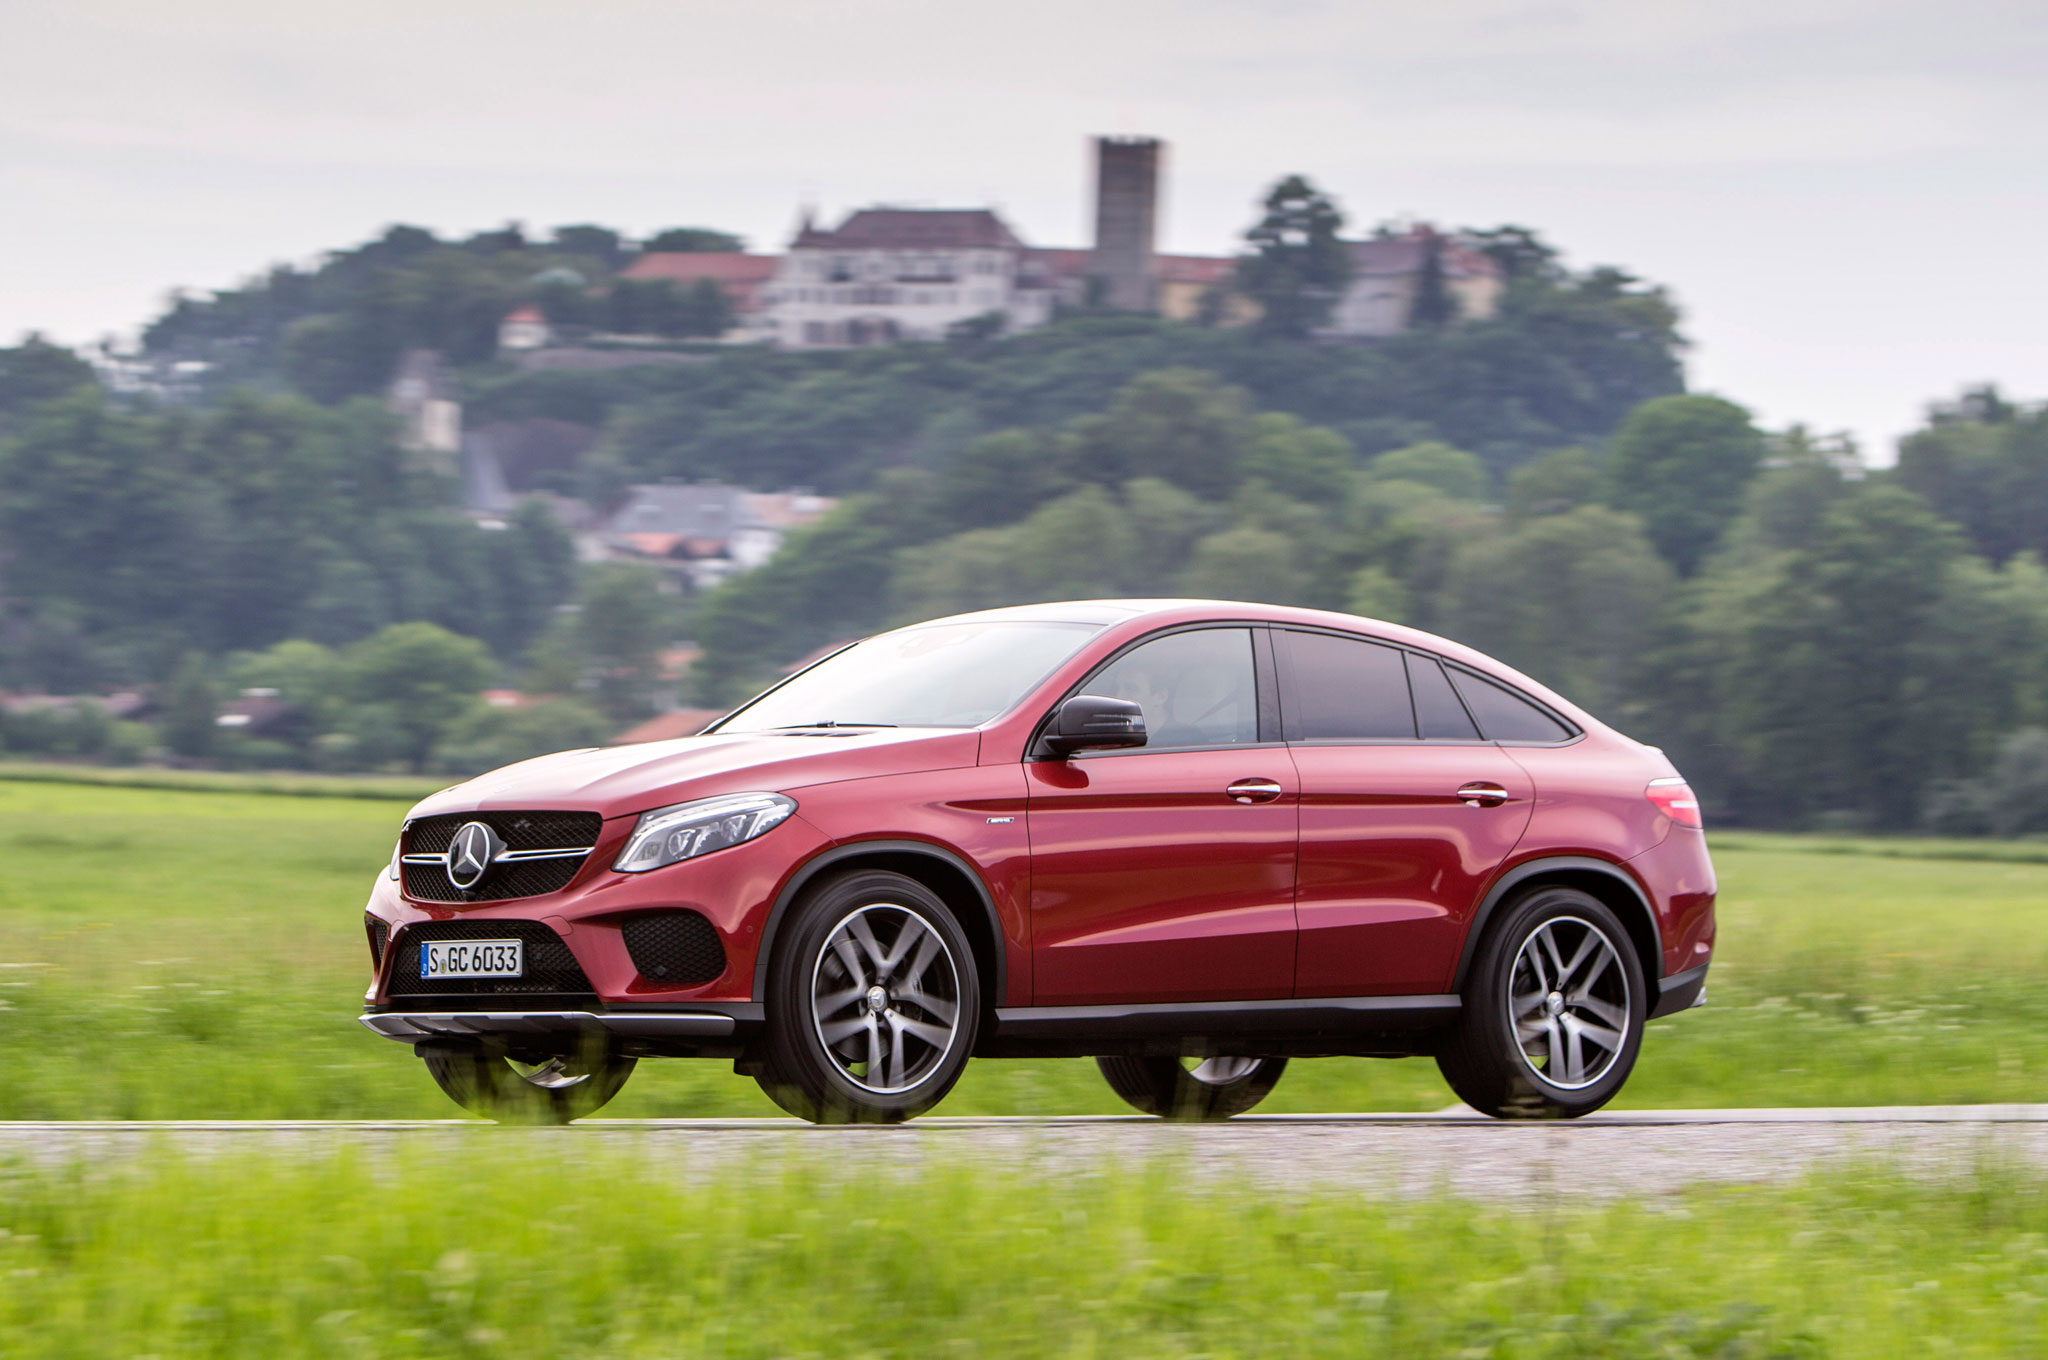 6d123a697b 2016 Mercedes-Benz GLE Coupe First Drive Review - MotorTrend